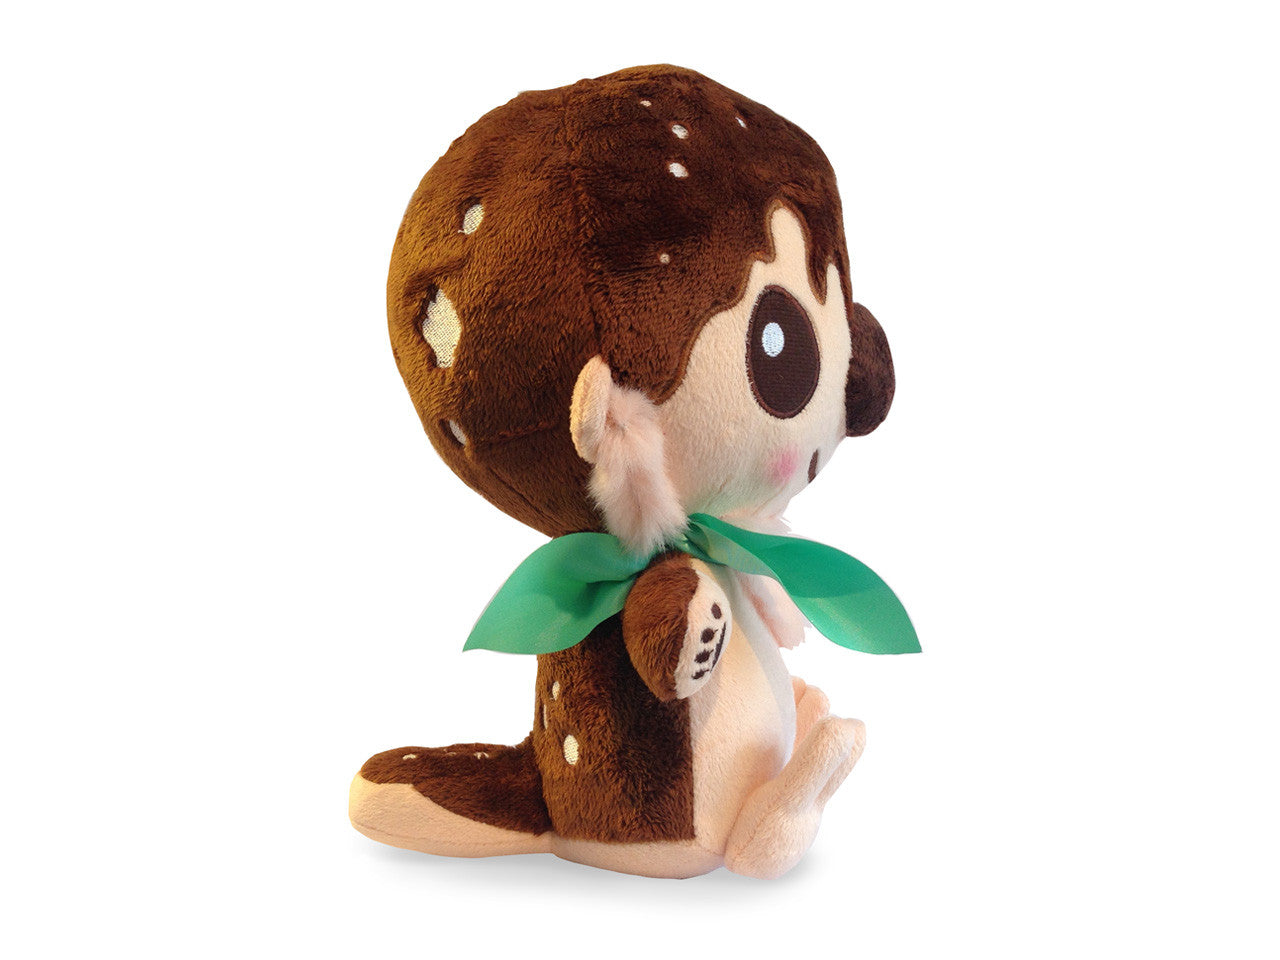 Eclair the Pastry Otter Large Plush